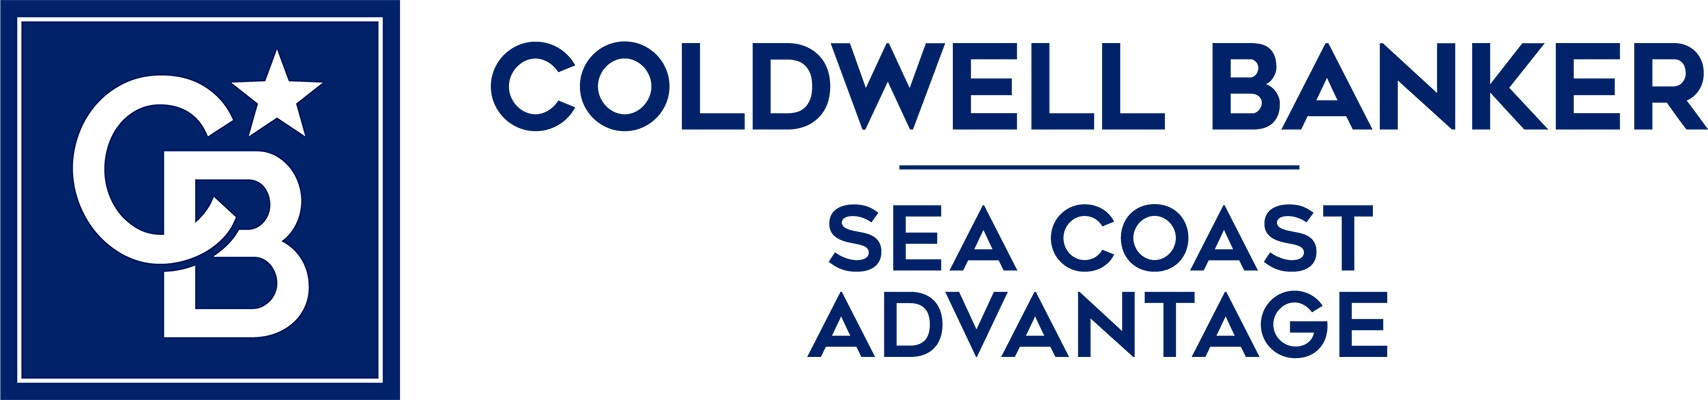 Wink Kinney - Coldwell Banker Sea Coast Advantage Realty Logo